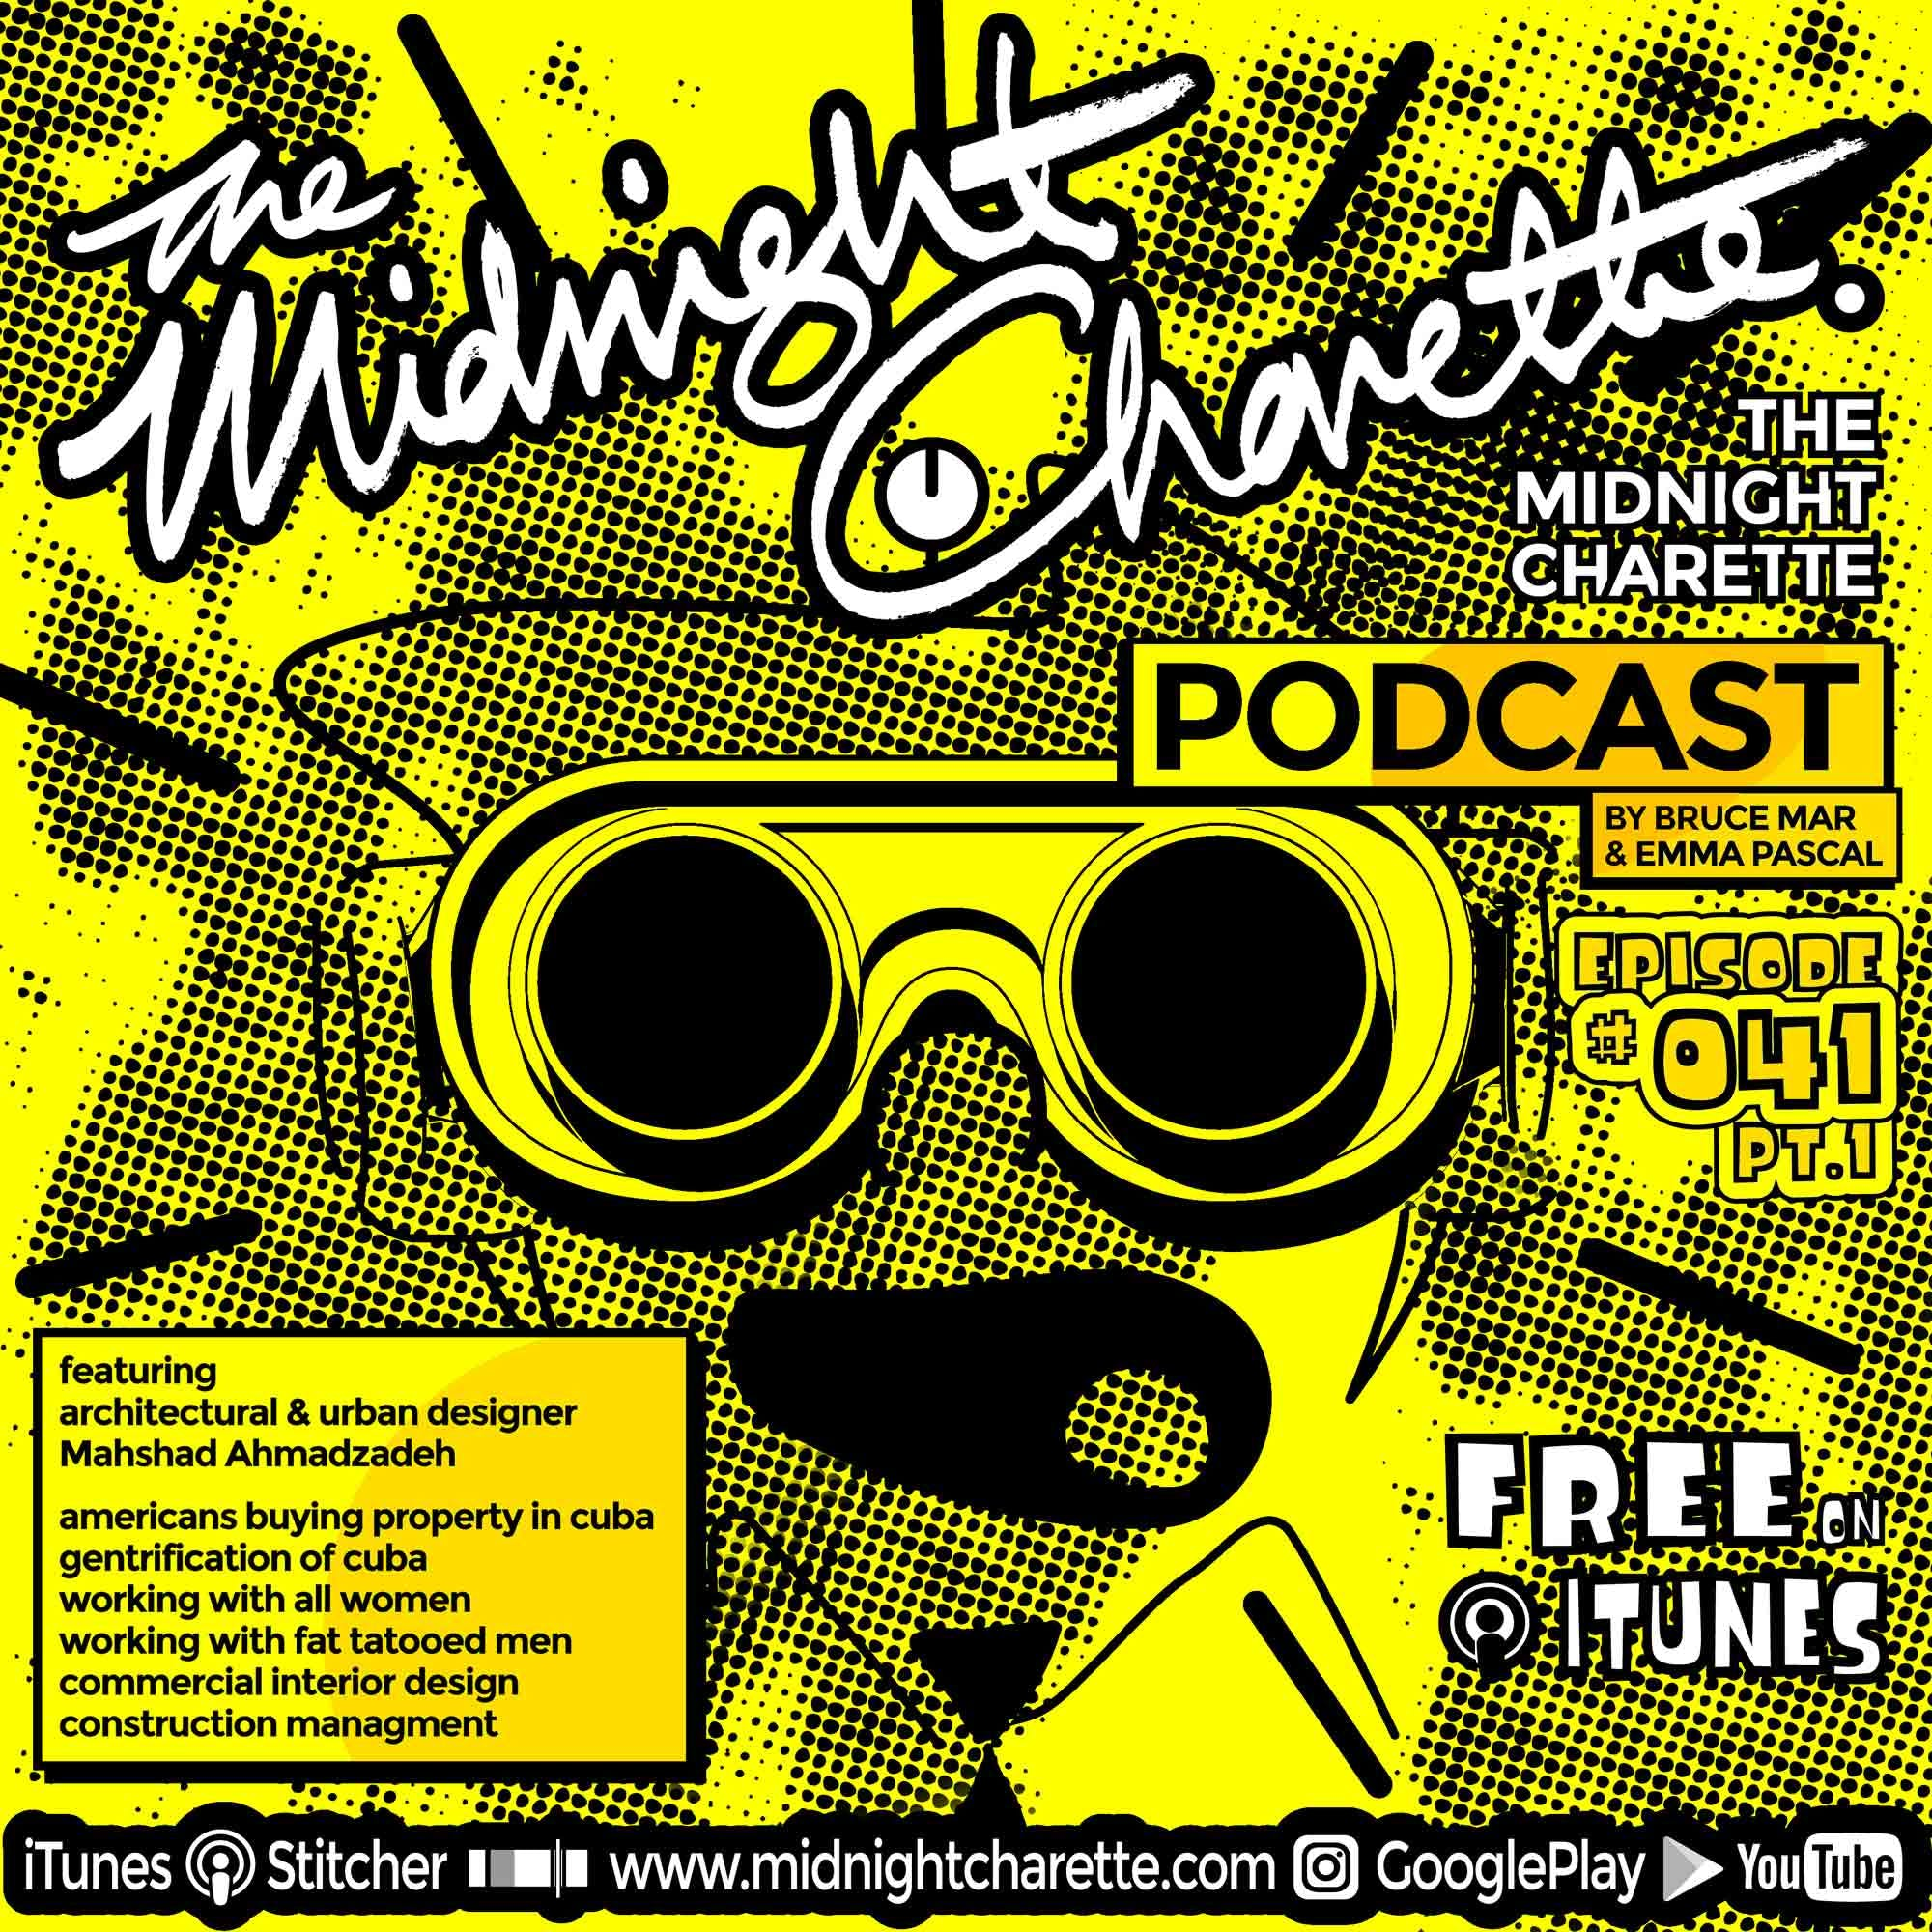 Podcast Episode #041 Part 1 - The Midnight Charette | The